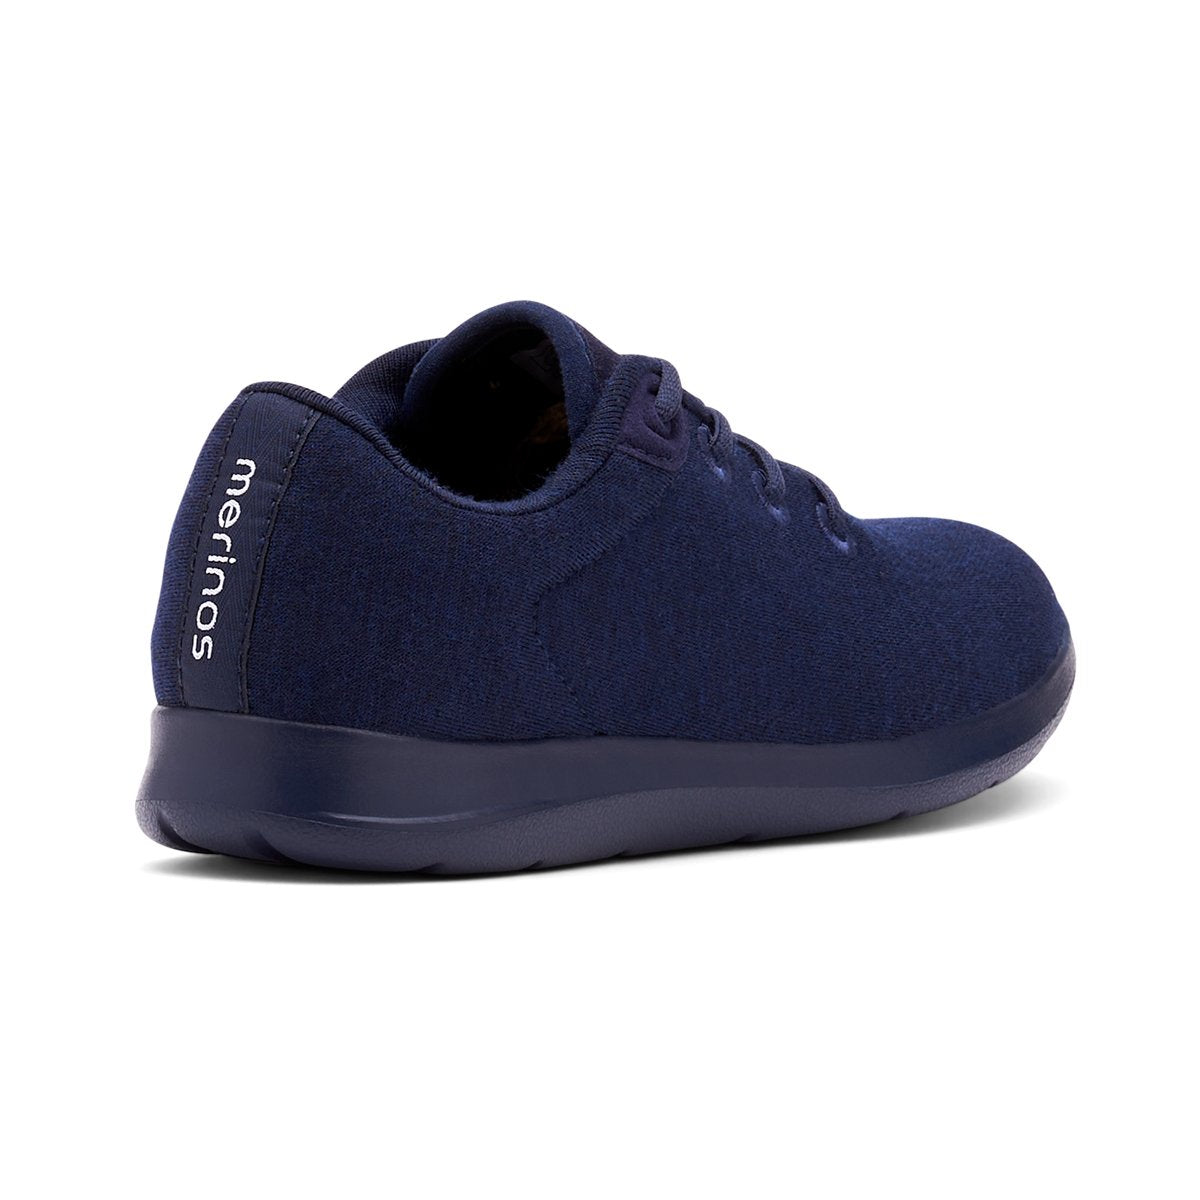 Men's Lace-Ups Navy/Navy